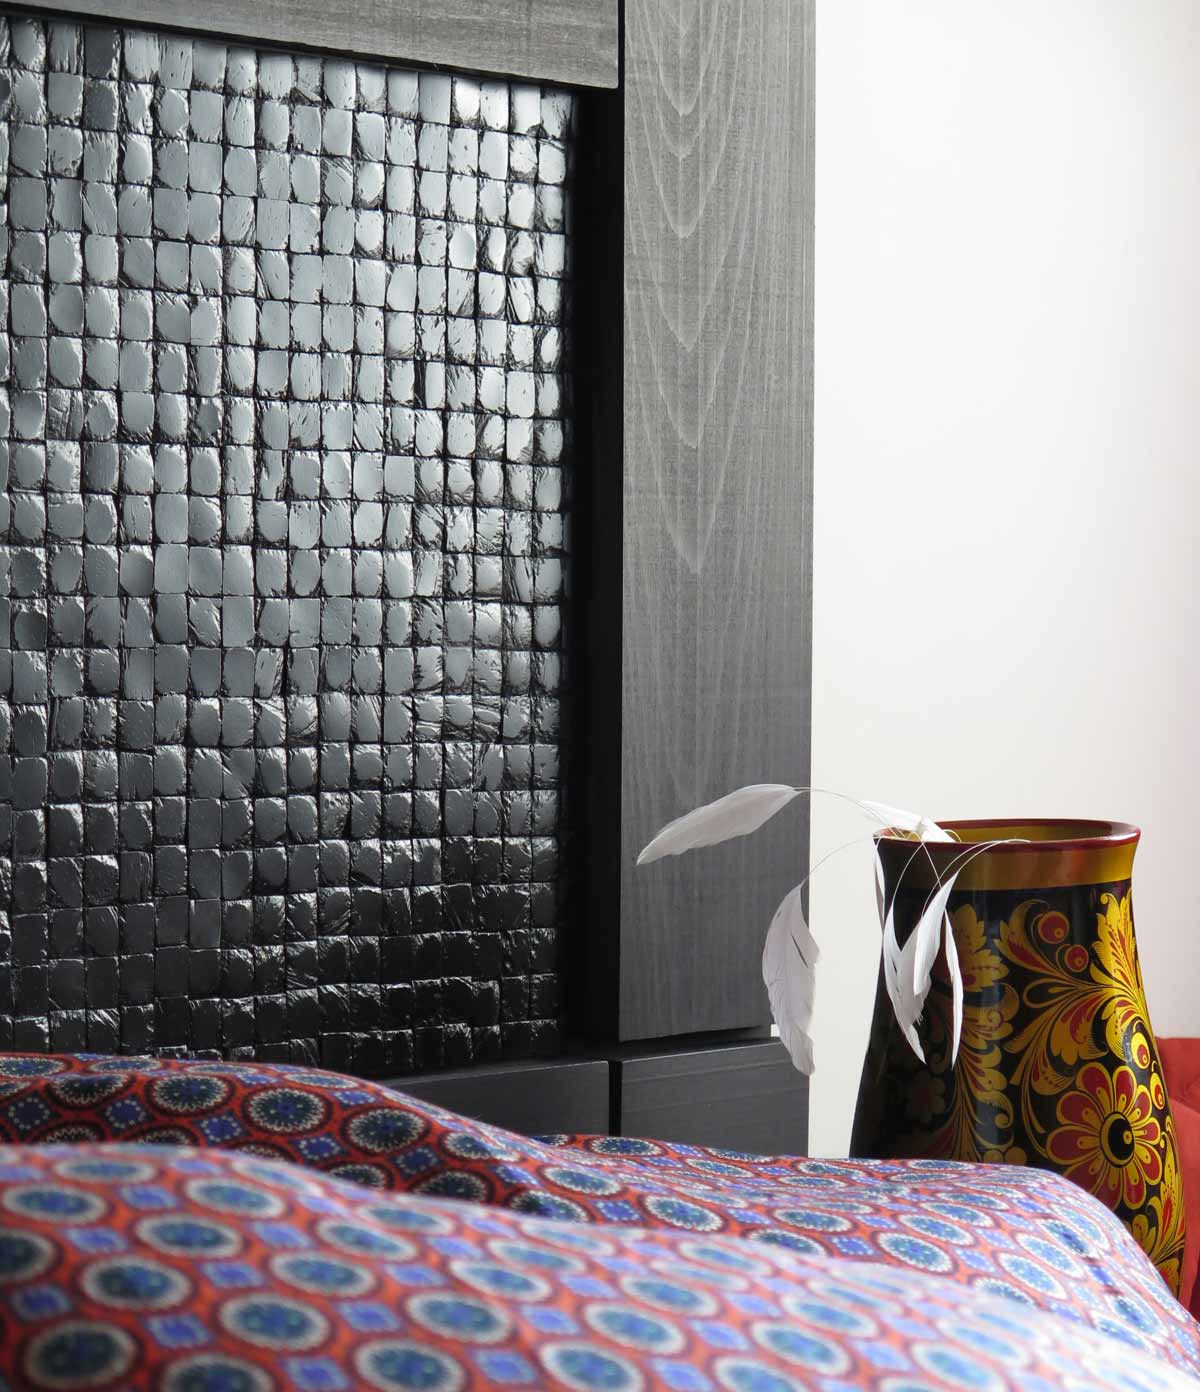 dujourdy architecte am nagement int rieur annecy. Black Bedroom Furniture Sets. Home Design Ideas